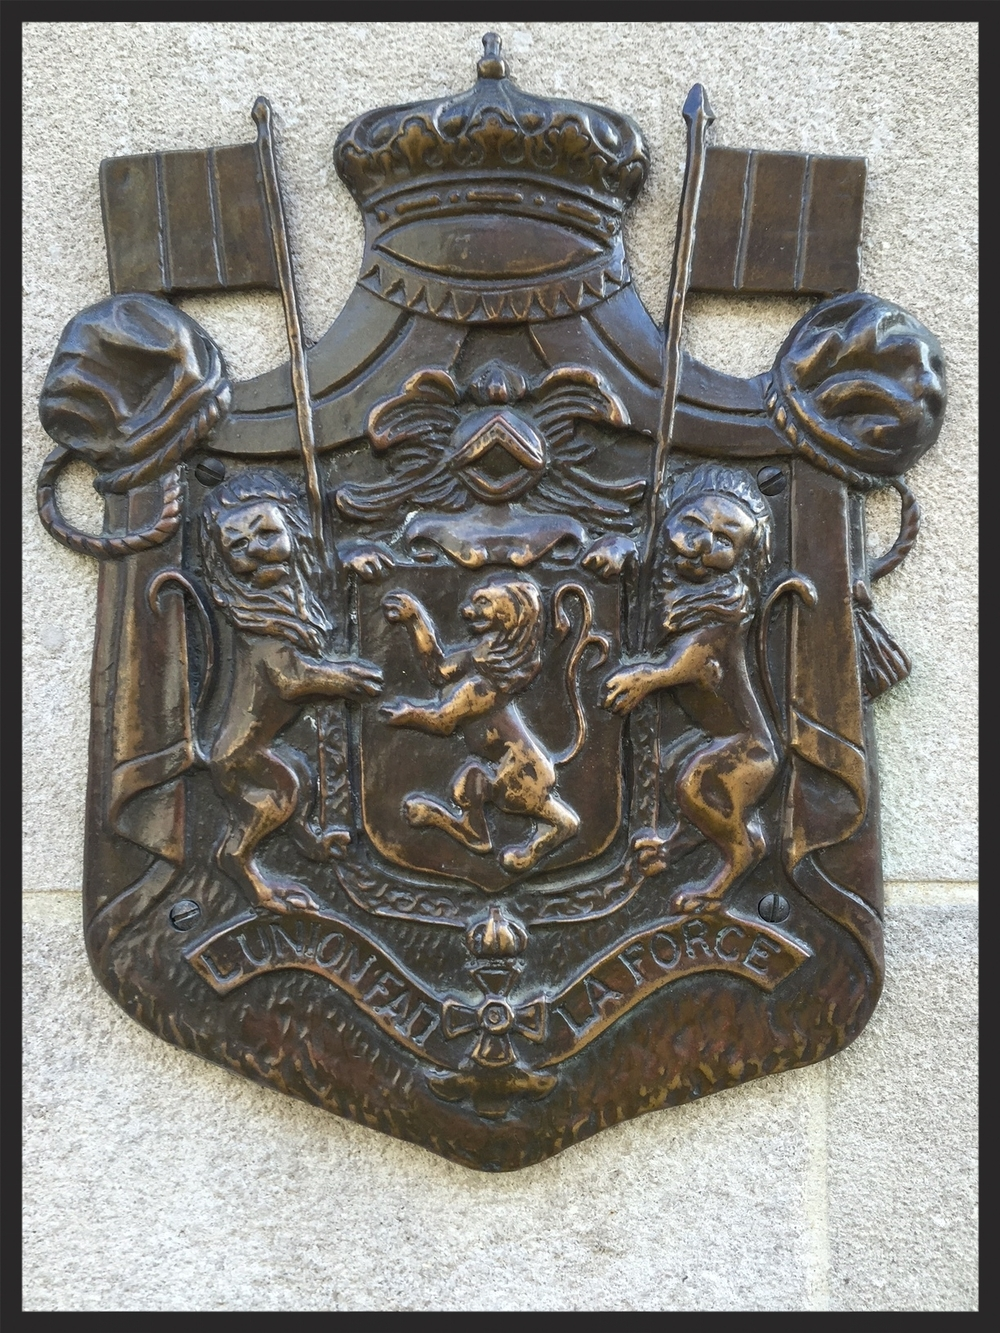 Bulgarian Coat-of-Arms outside of the Mayflower Hotel, Washington, DC